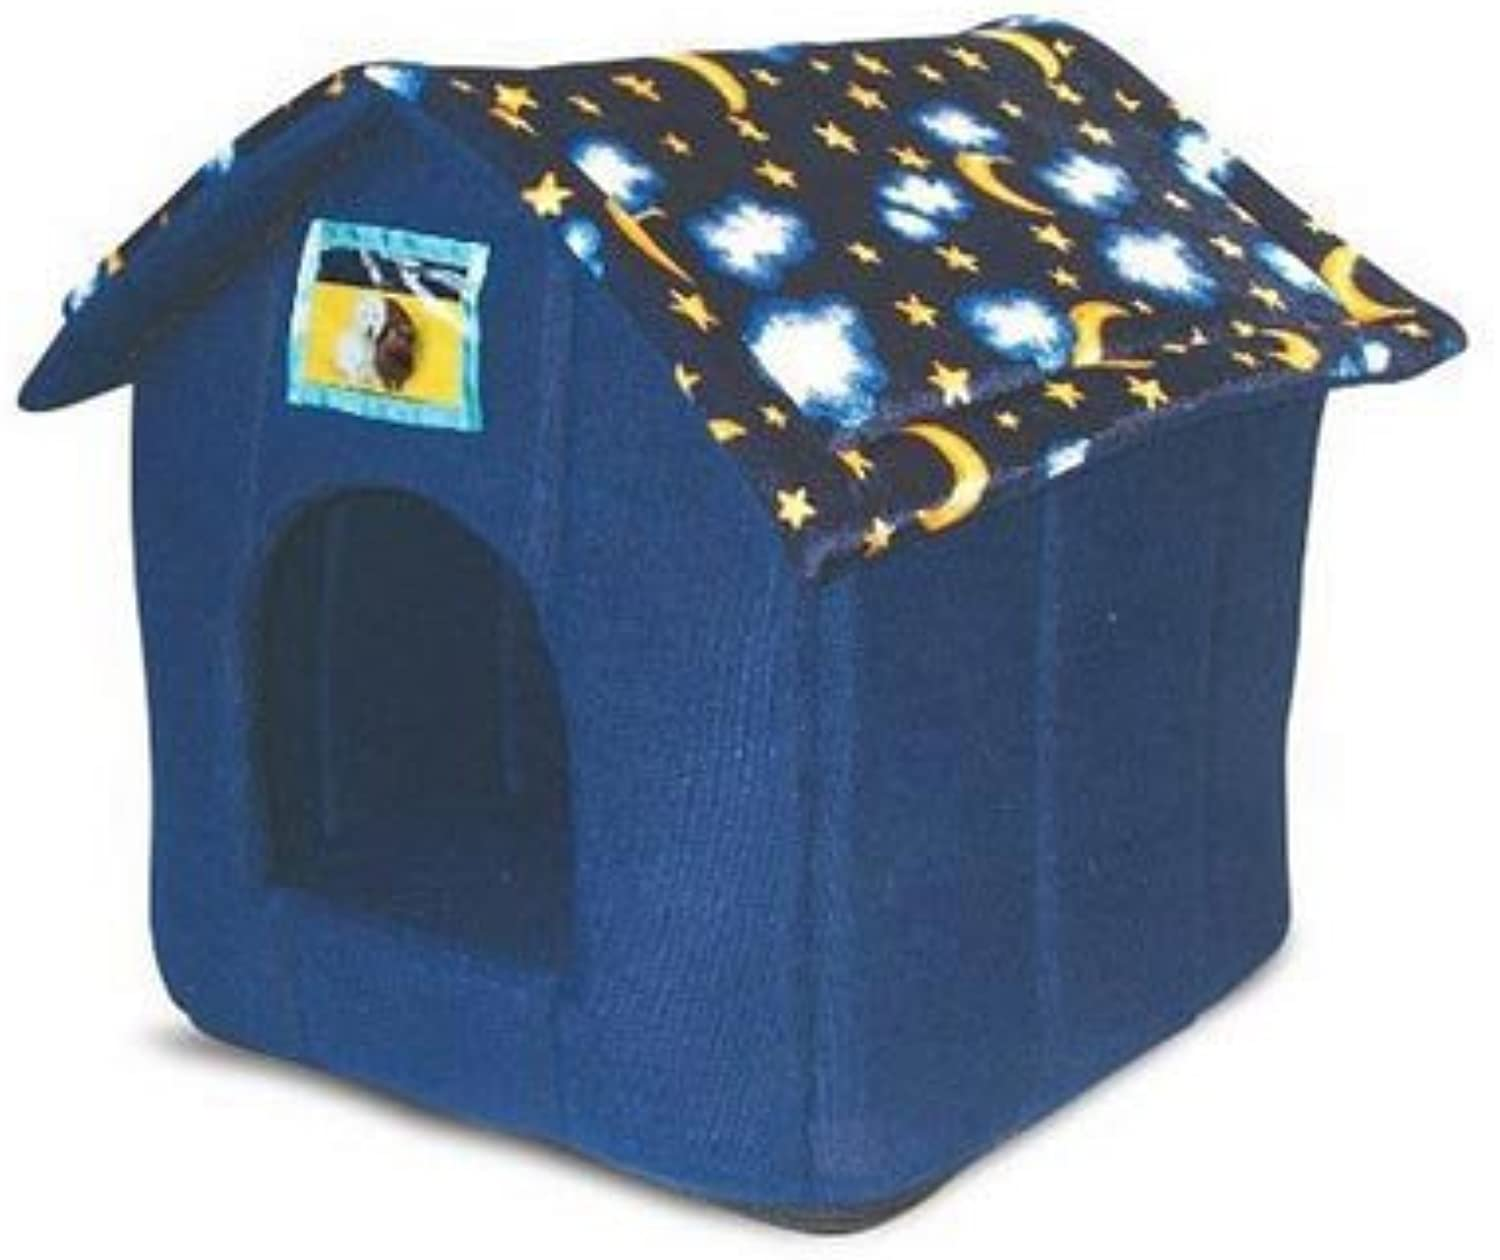 PetEssentials Just4Pets Moon and Stars House Bed (EcoFriendly Packaging) 40 x 40 x 33cm